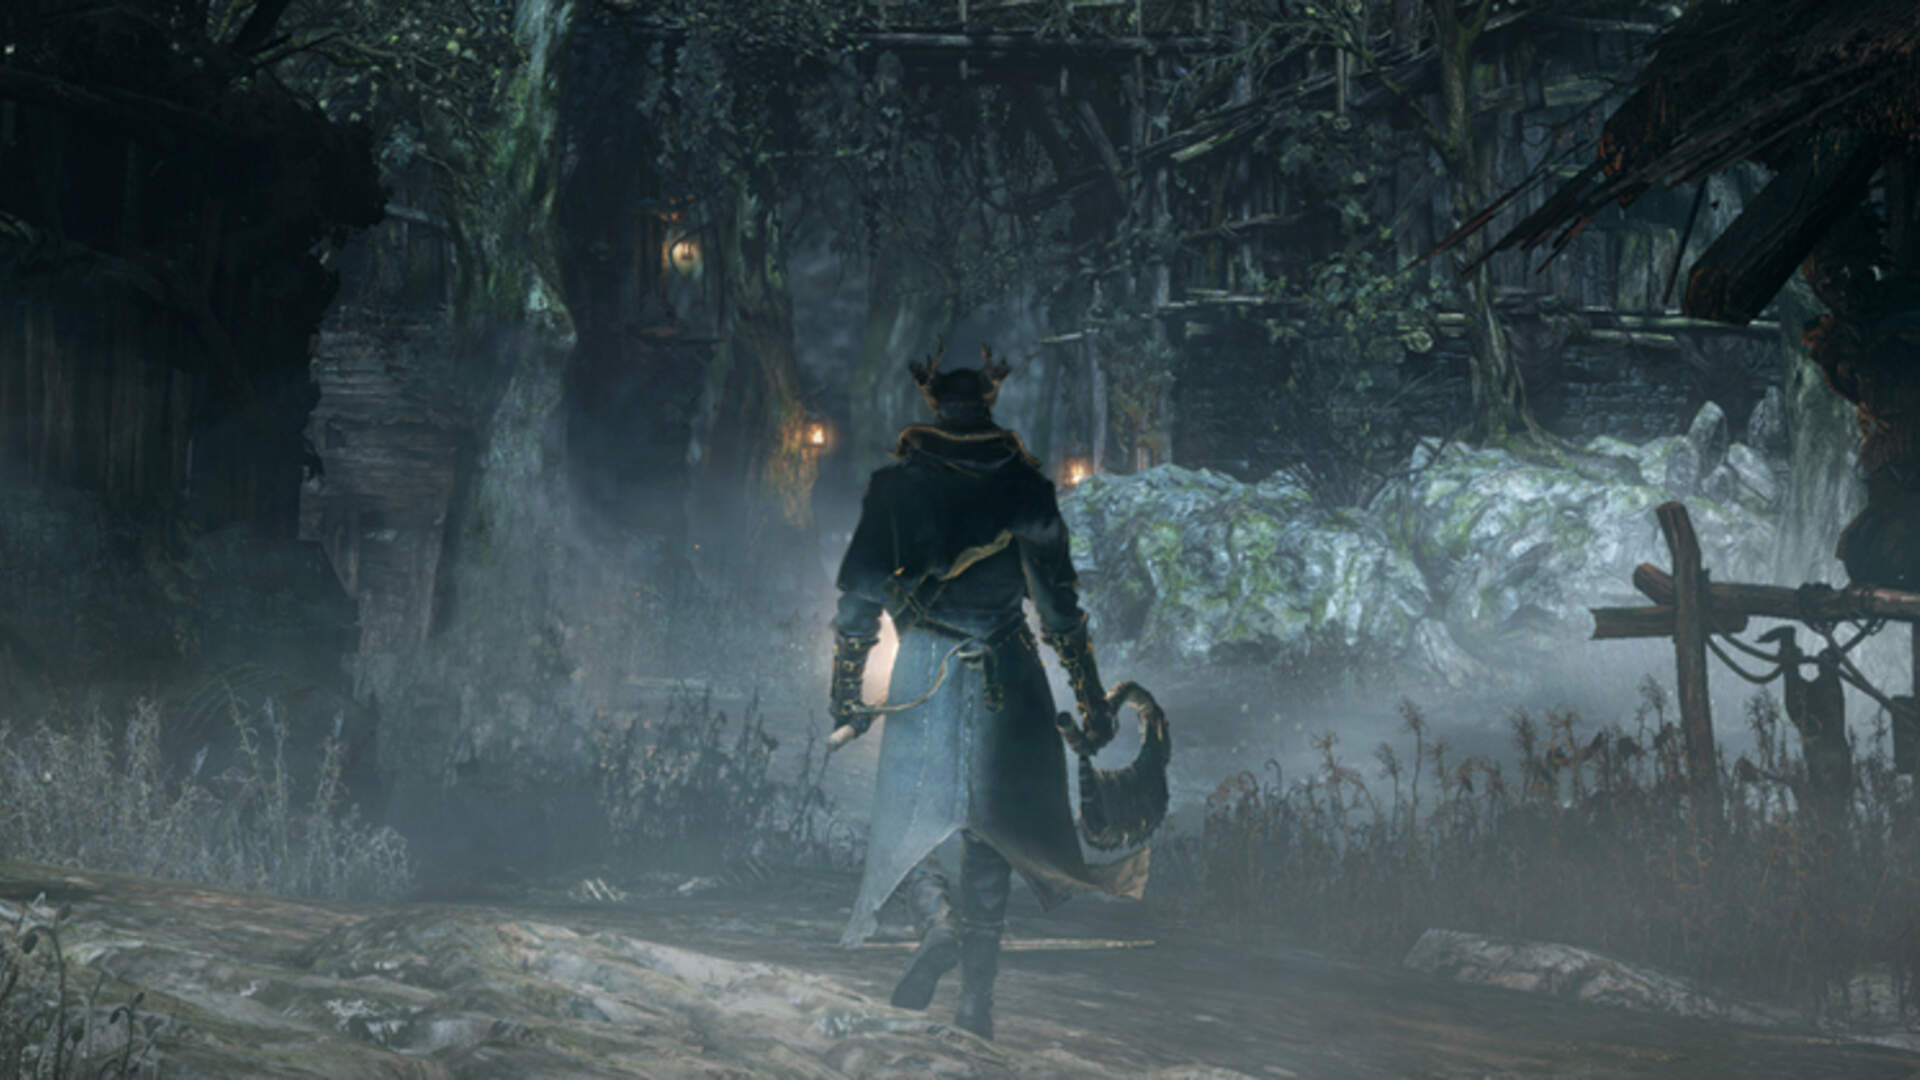 Bloodborne Forbidden Woods Guide - Complete Forbidden Woods Walkthrough, How to Find Iosefka